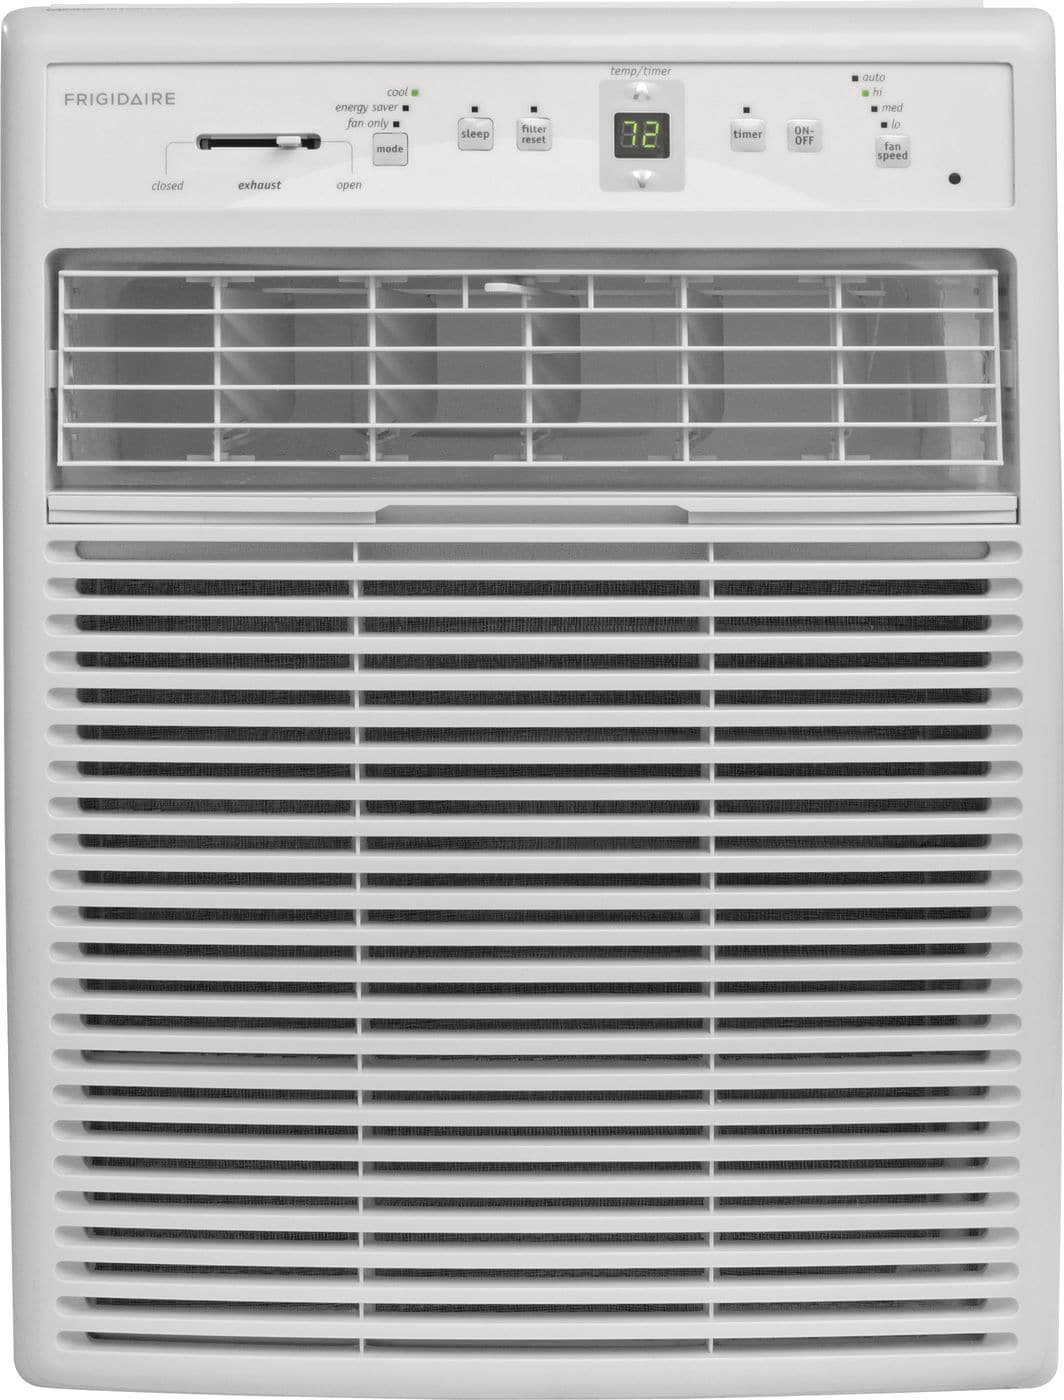 Model: FFRS1022R1 | Frigidaire 10,000 BTU Window-Mounted Slider / Casement Air Conditioner